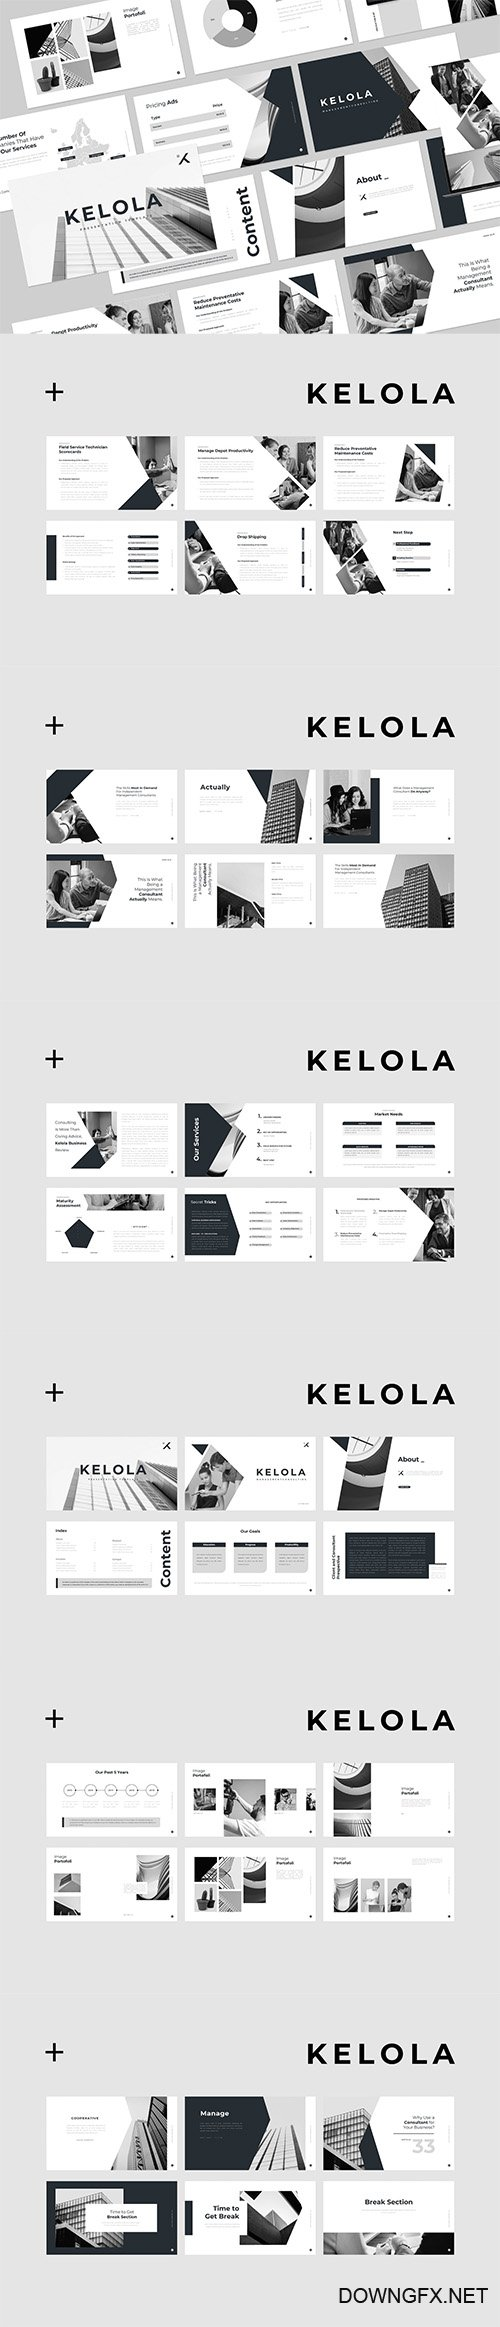 Kelola Powerpoint, Keynote and Google Slides Templates